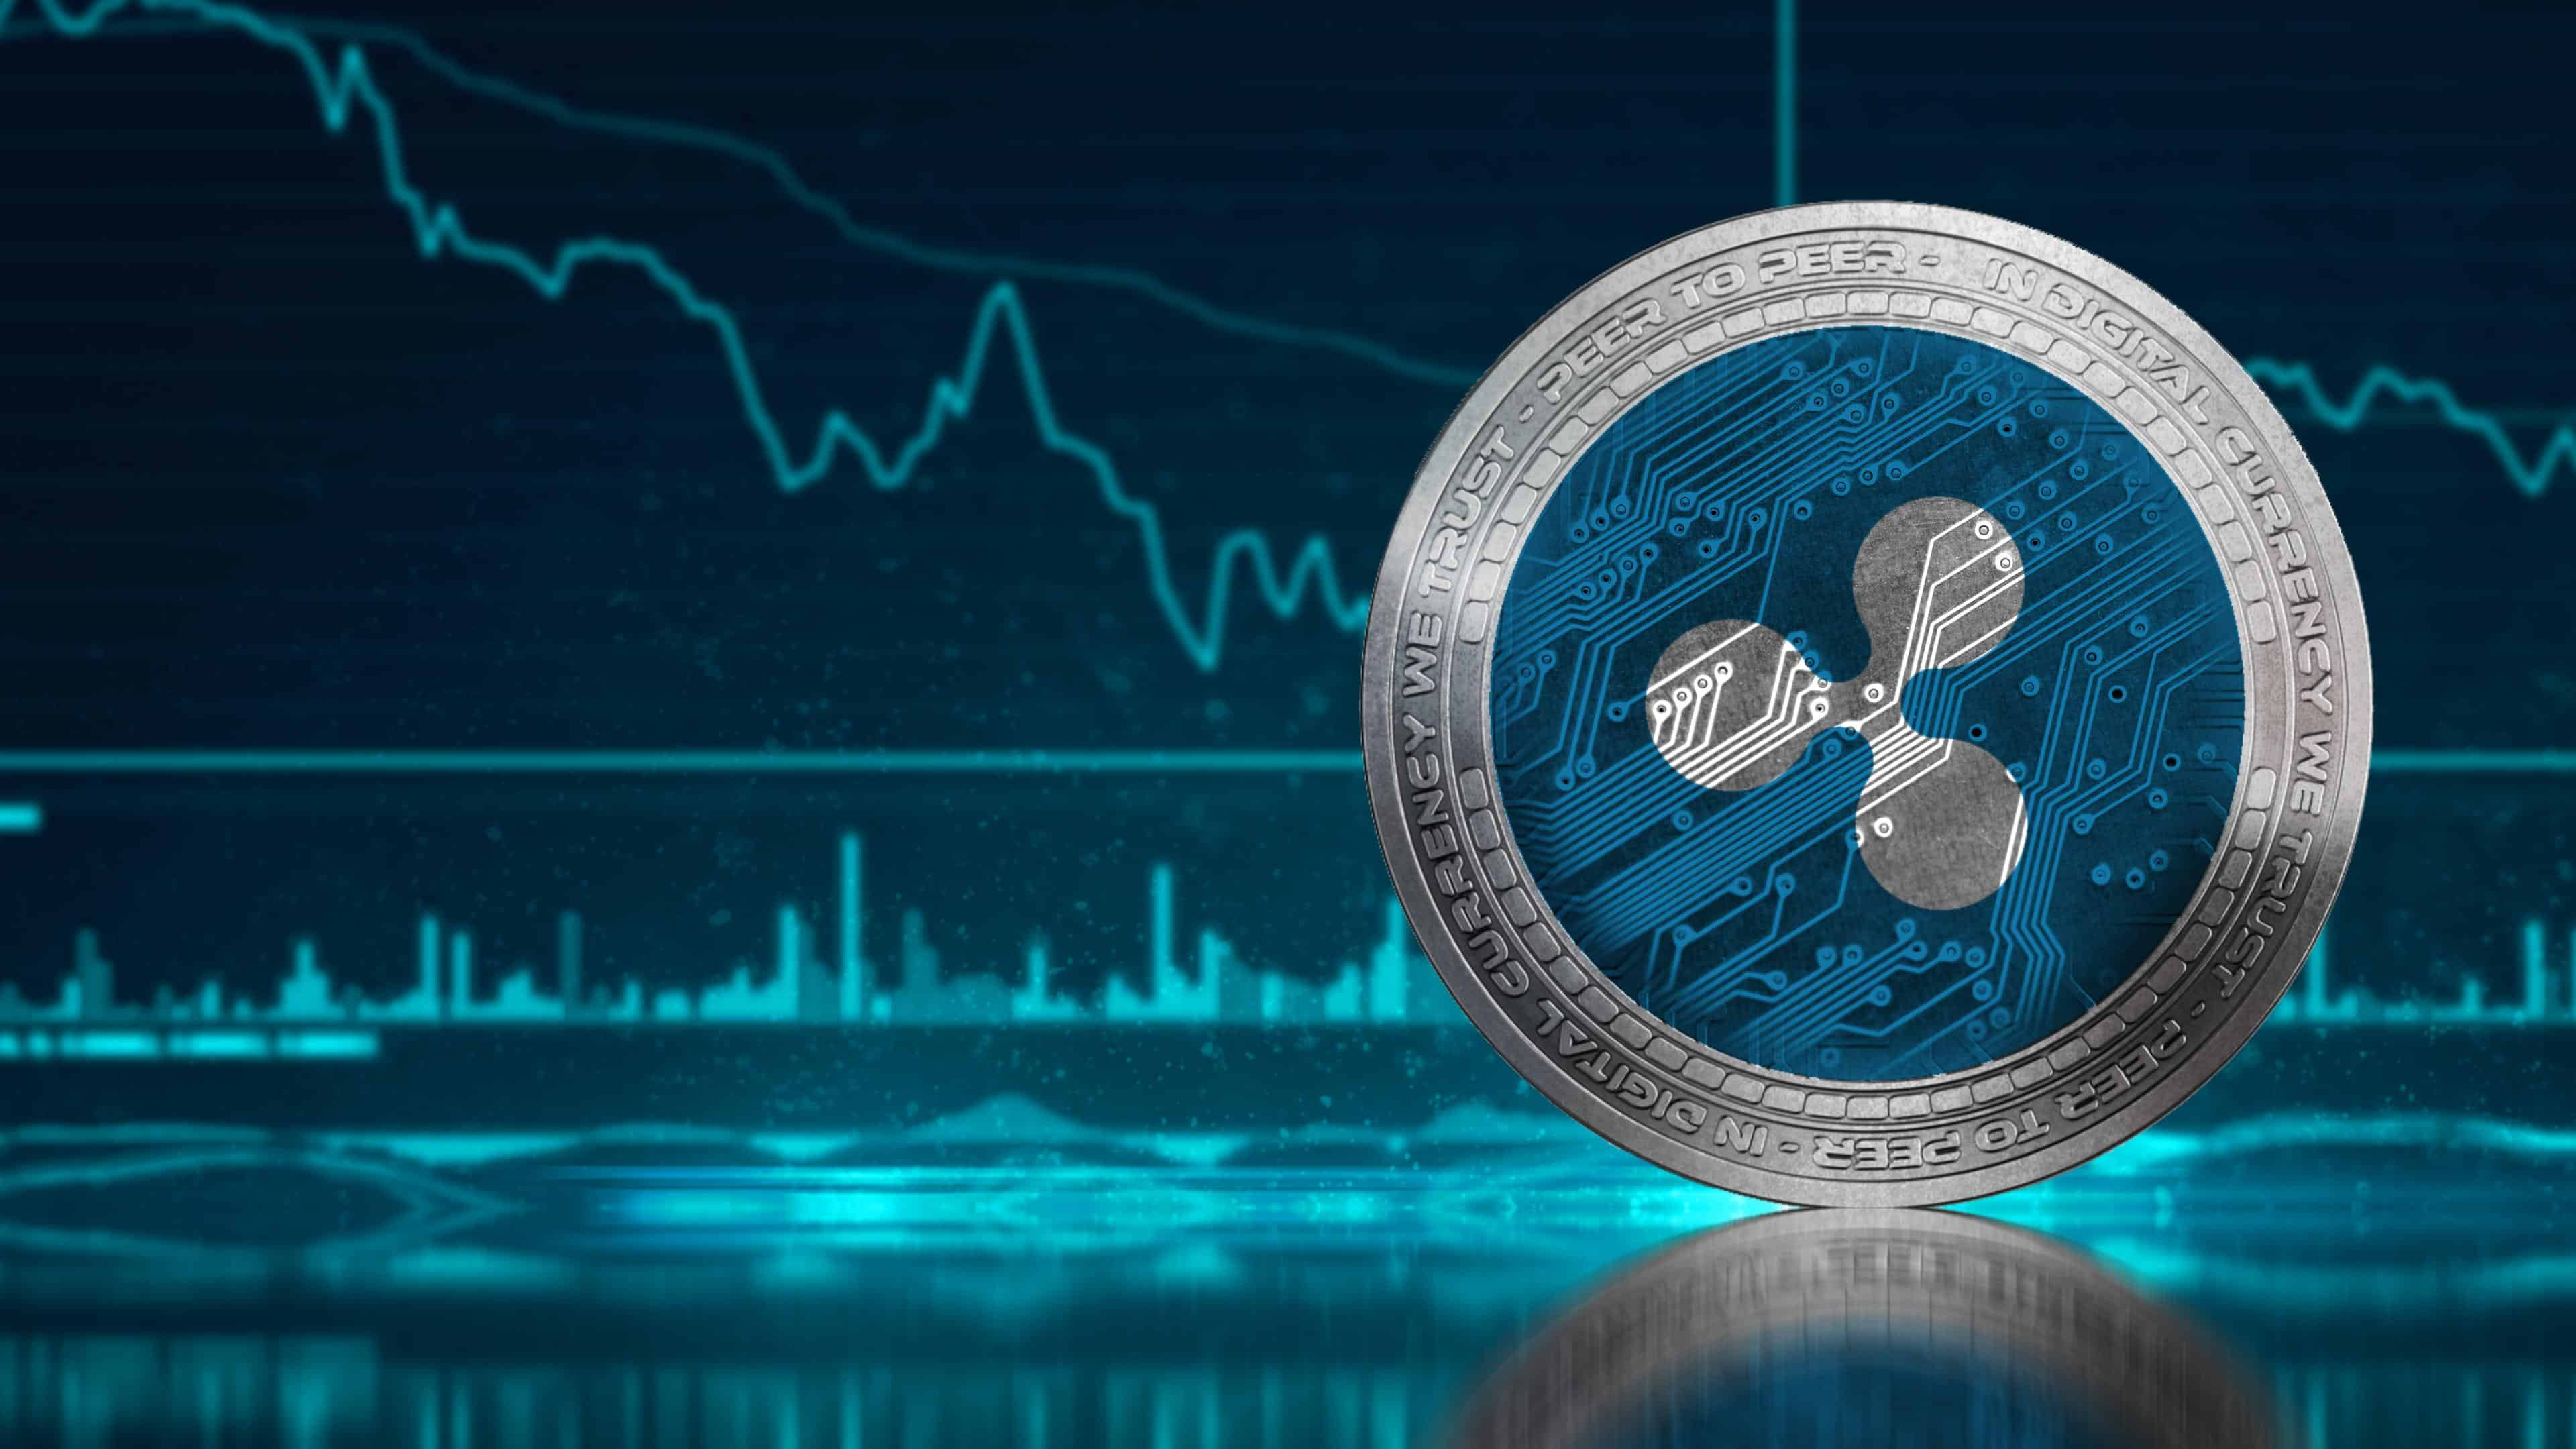 Ripple (XRP) Price Analysis